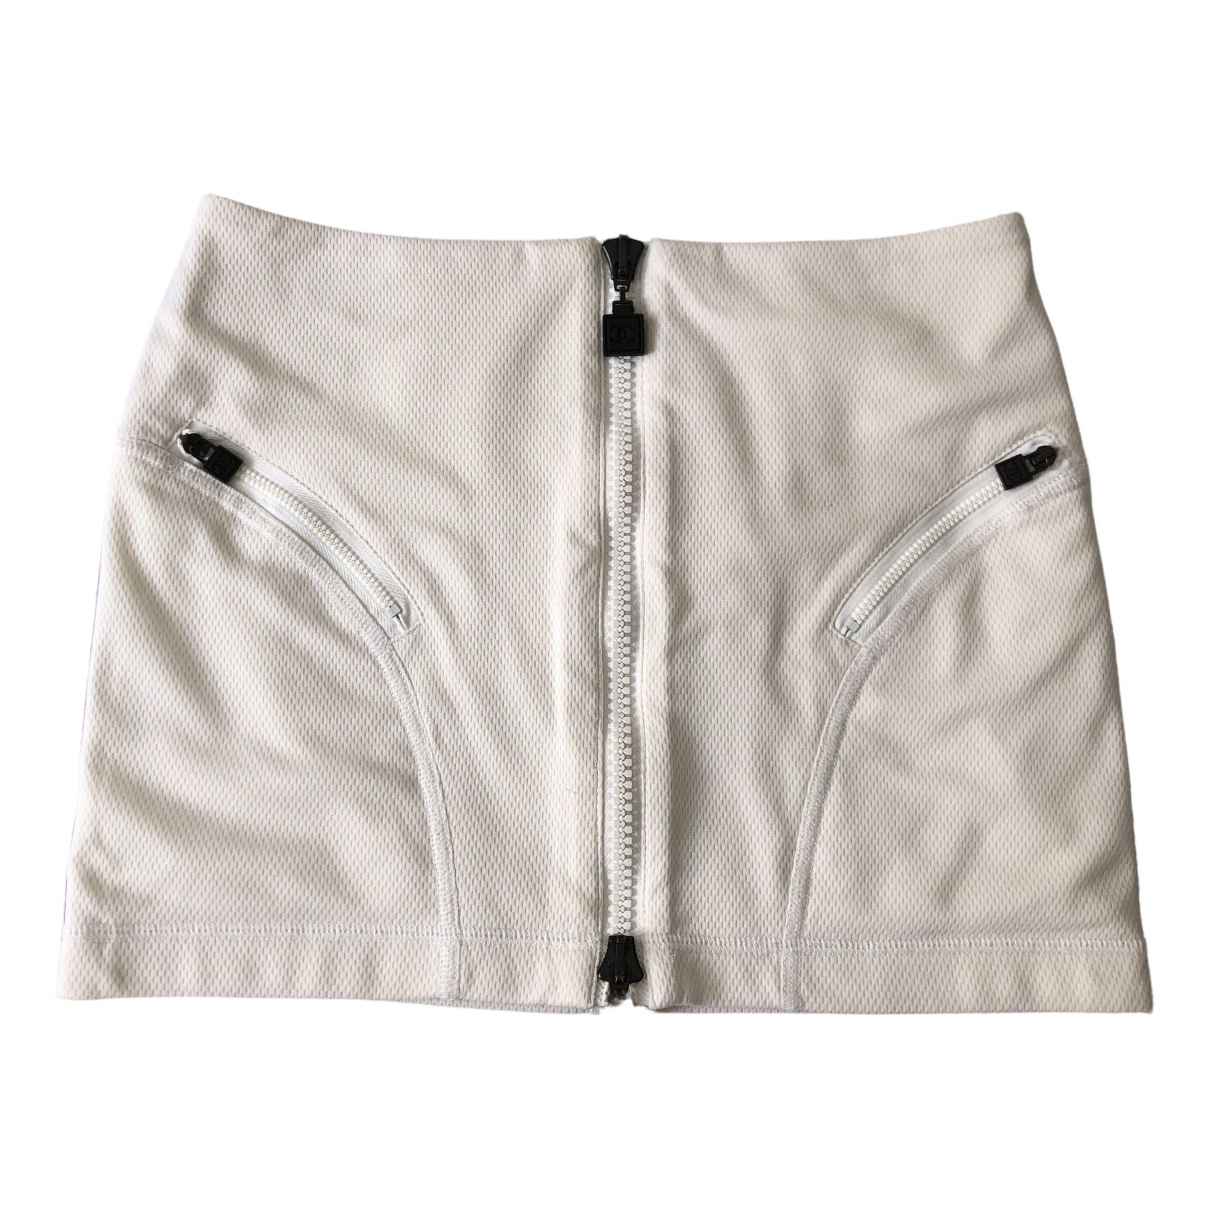 Chanel \N White Cotton skirt for Women 36 FR